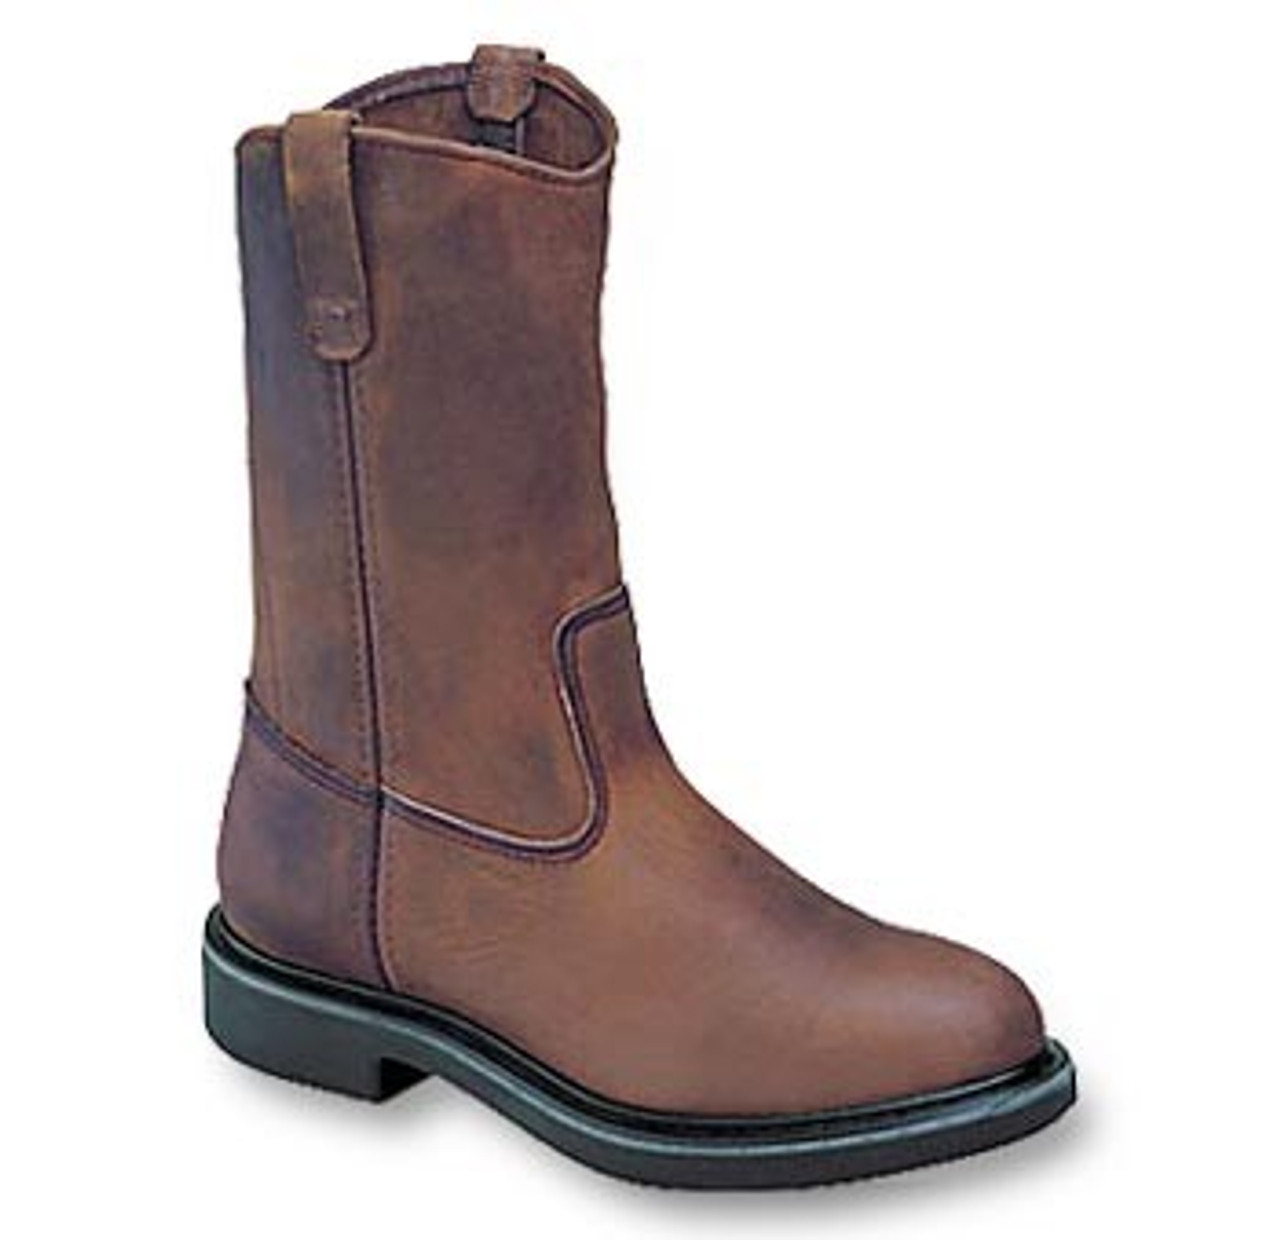 3edd877a167 Red Wing 1105 Pecos Pull On Boot